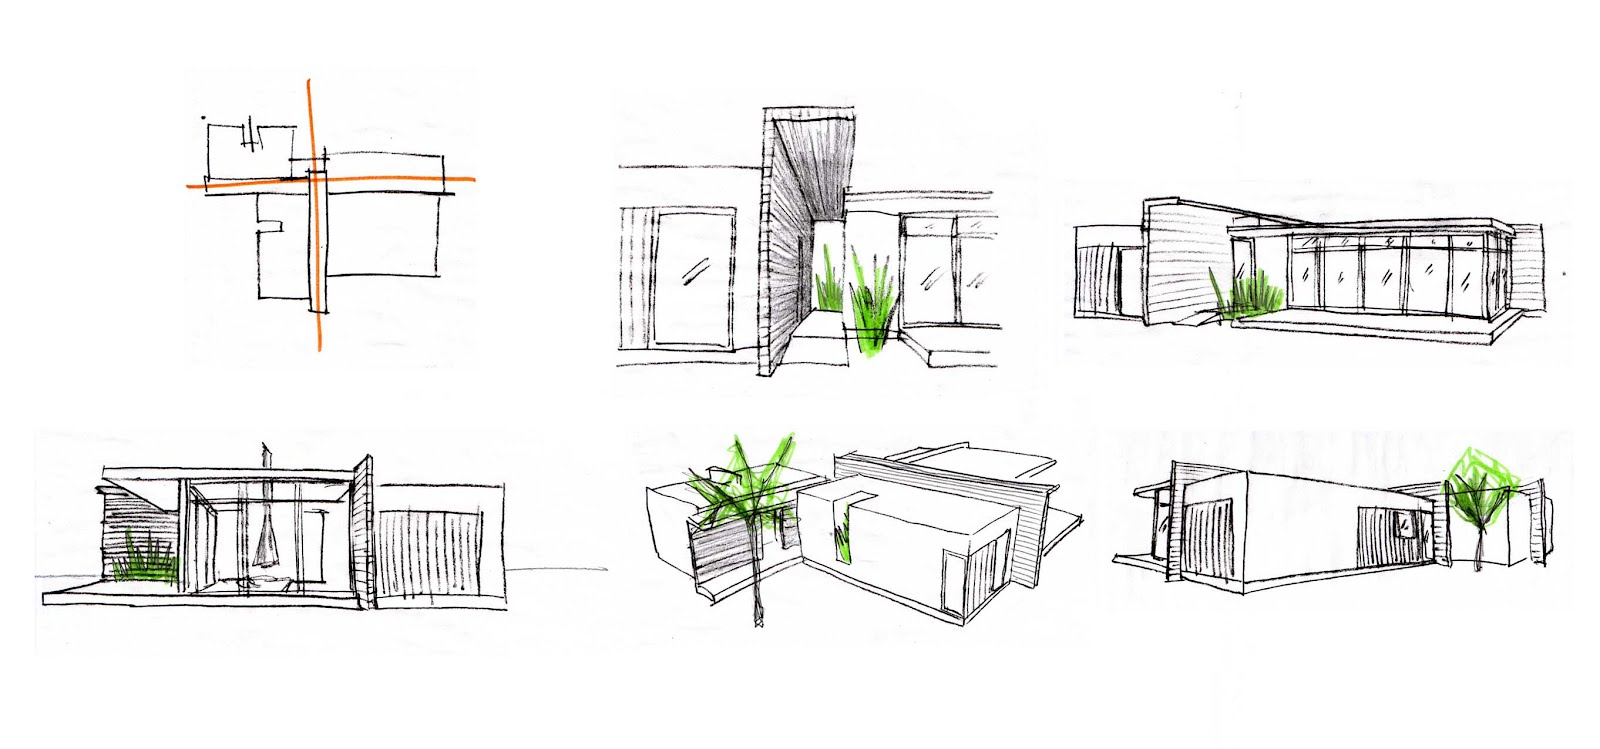 Habitar casa ozso for Concept of housing in architecture